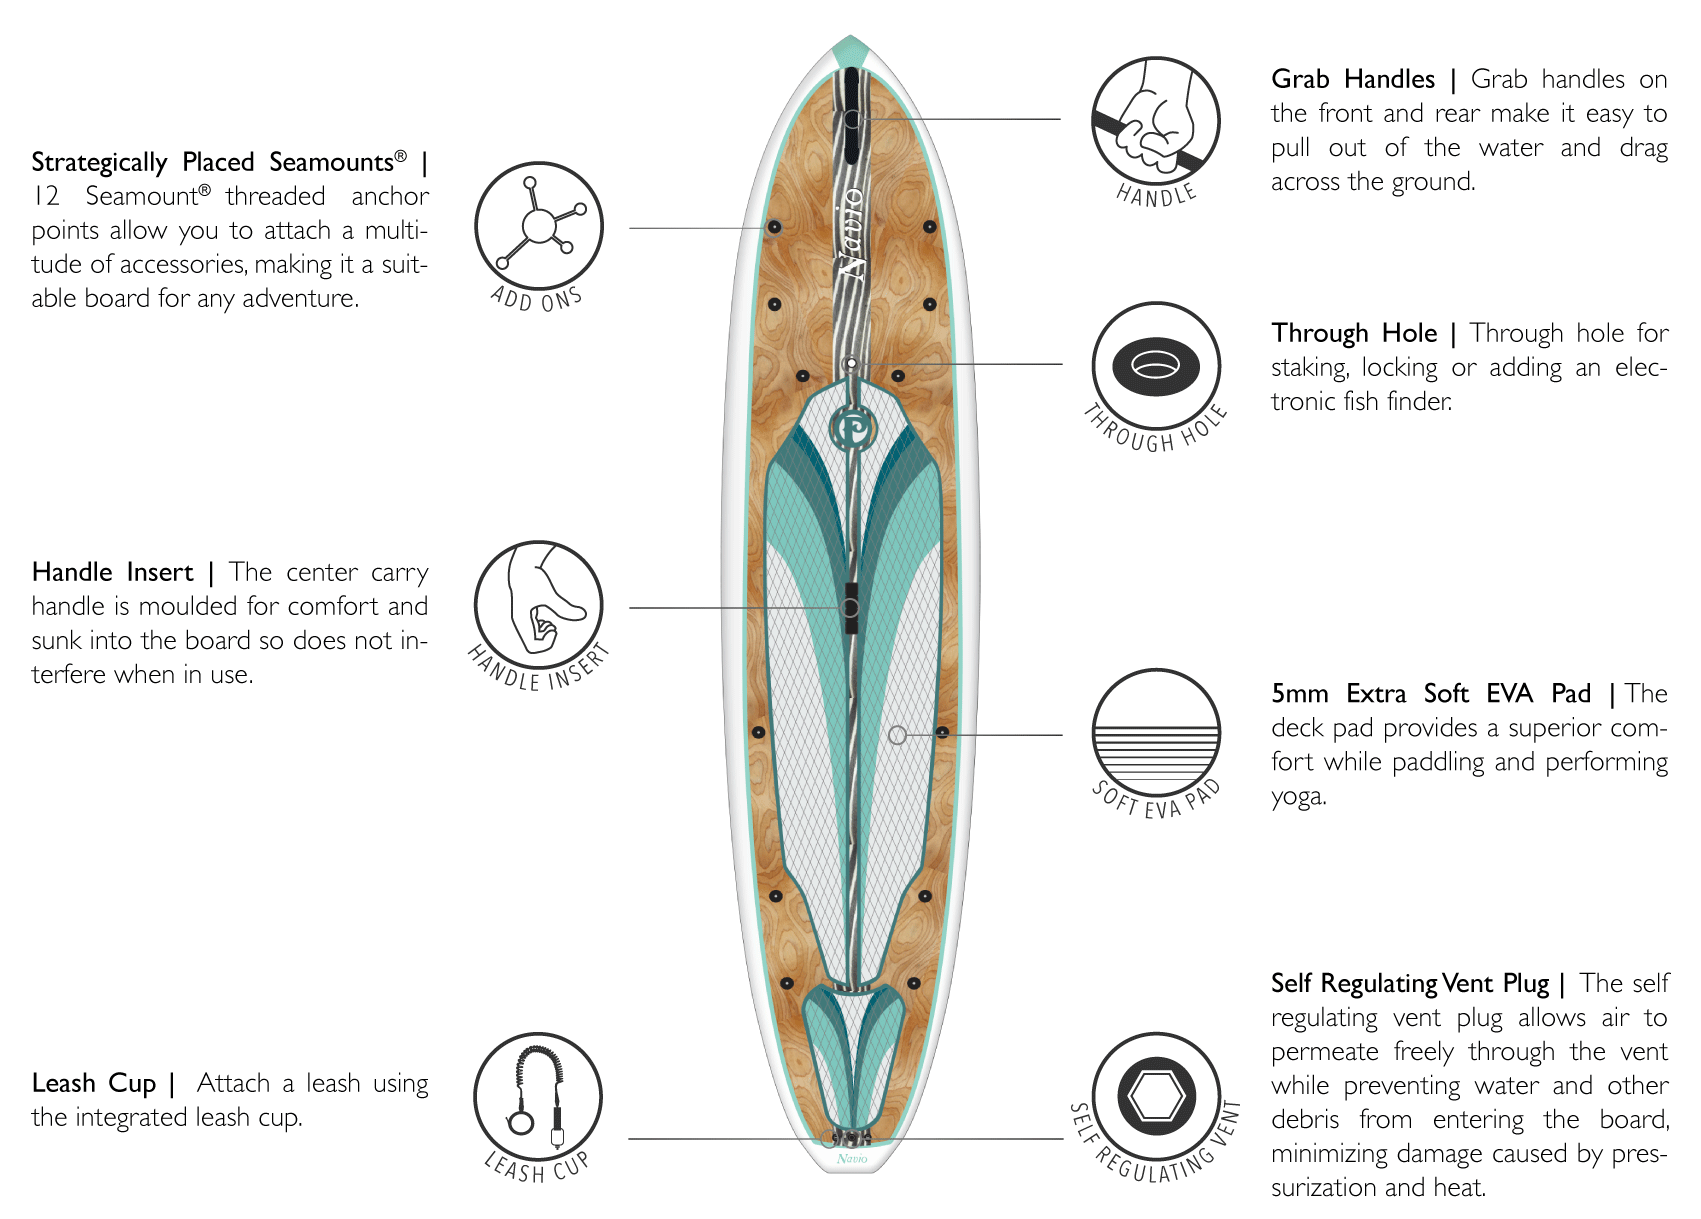 This is the best keel hull paddle board. Navio features strategically places seamounts, center carry handle leash cup, grab handle, through hold, 5mm extra soft Eva deck pad, self regulating vent plug